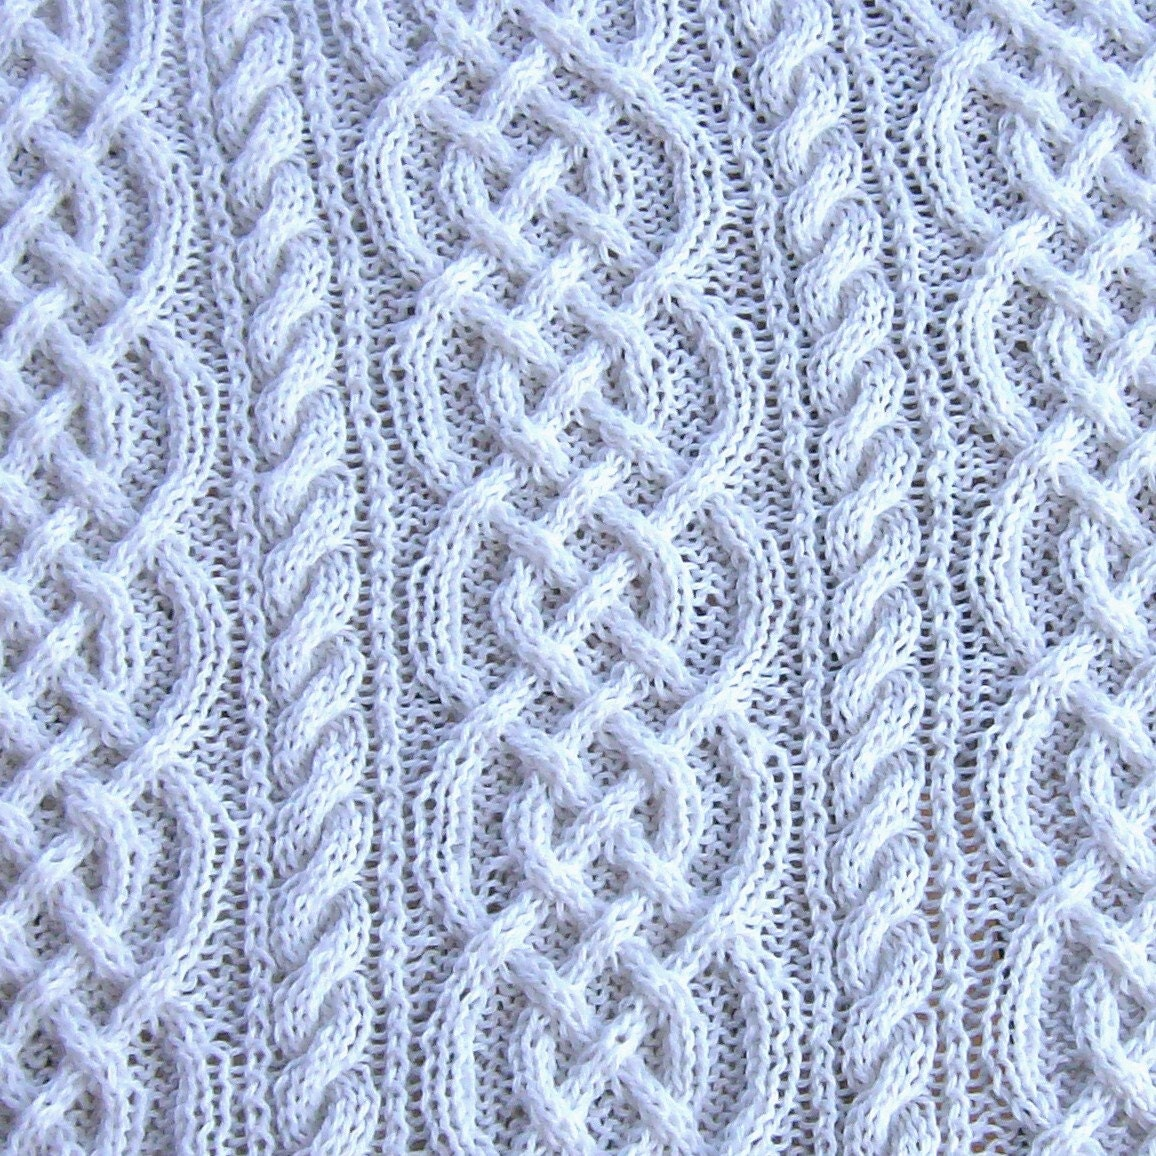 Crochet Cable Baby Blanket Pattern : pattern for saxon braid and cable baby afghan